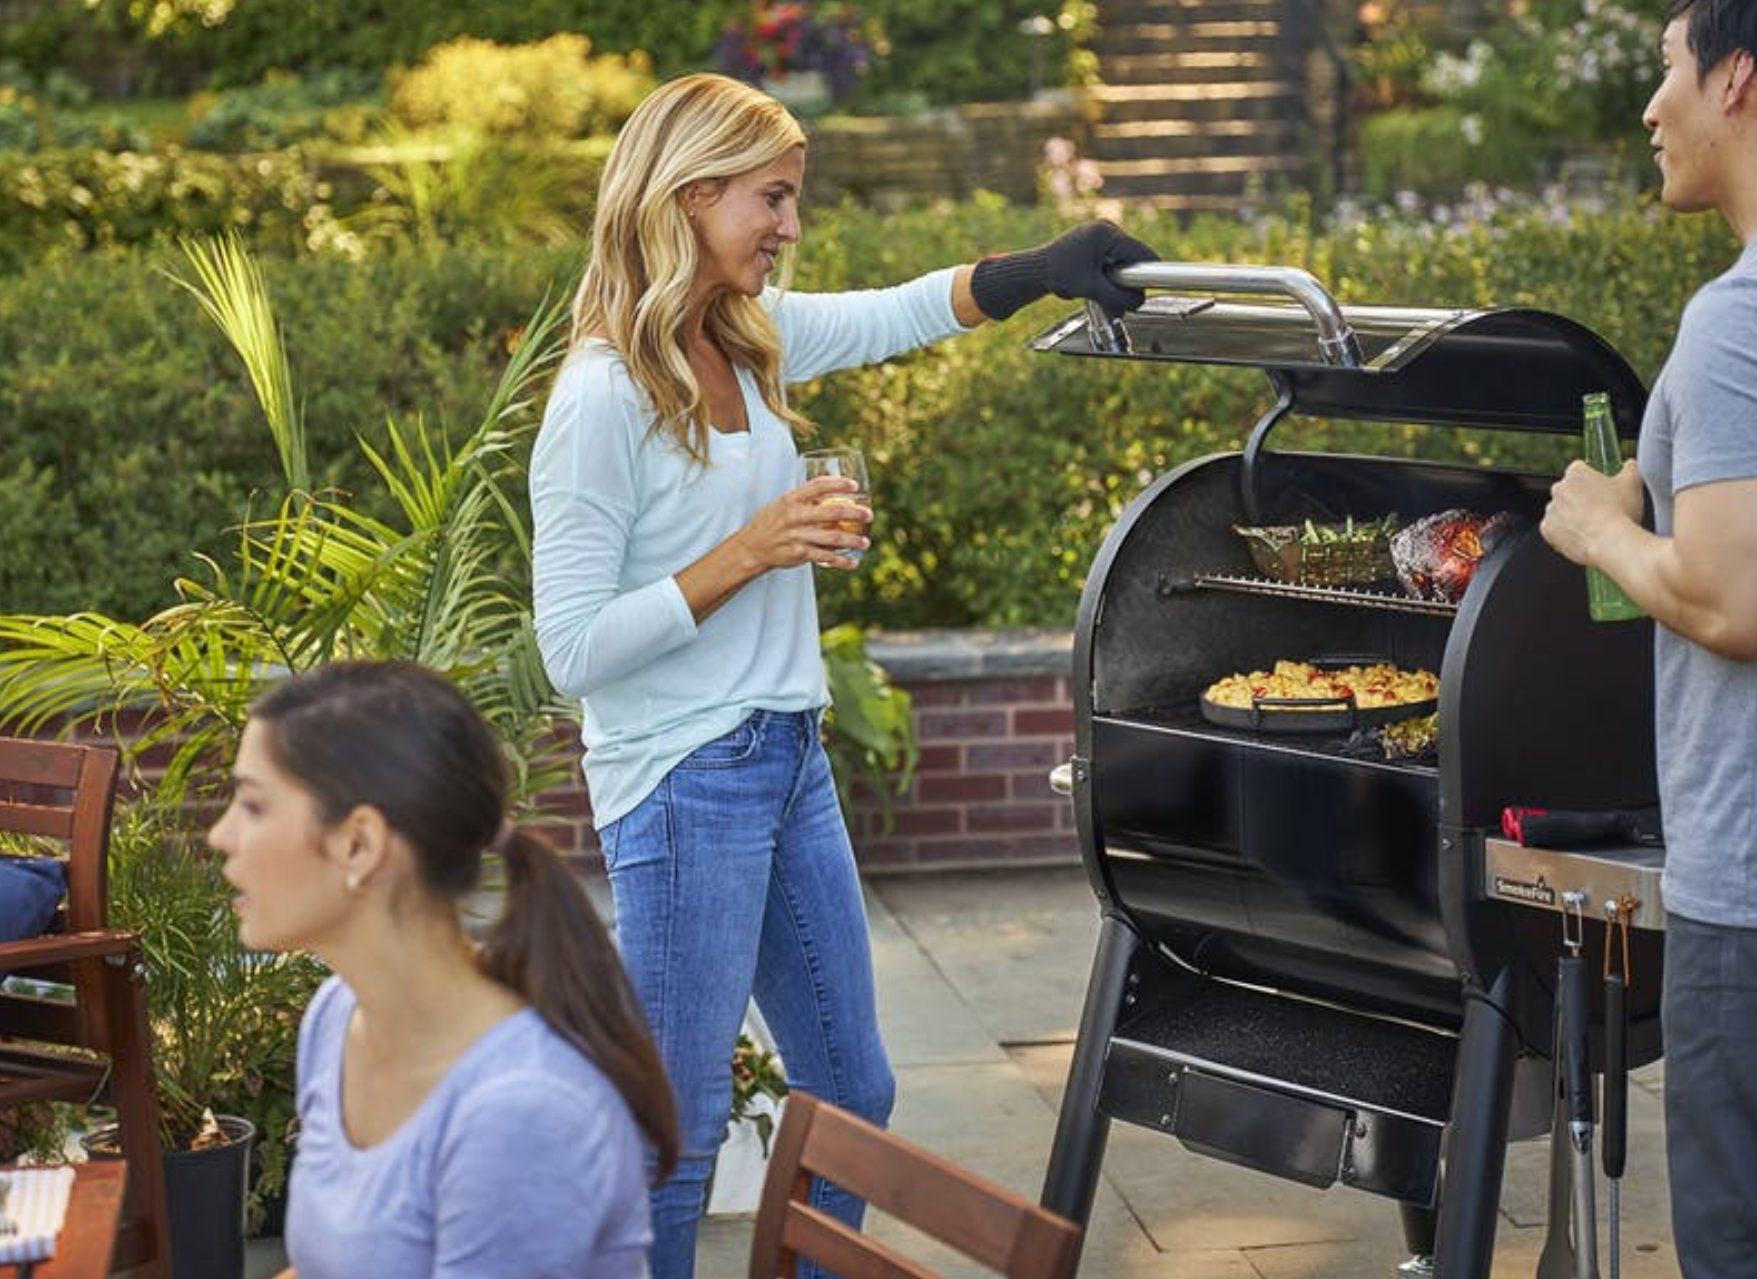 Outdoor Kitchen Builder & Grill Store - Just Grillin ...